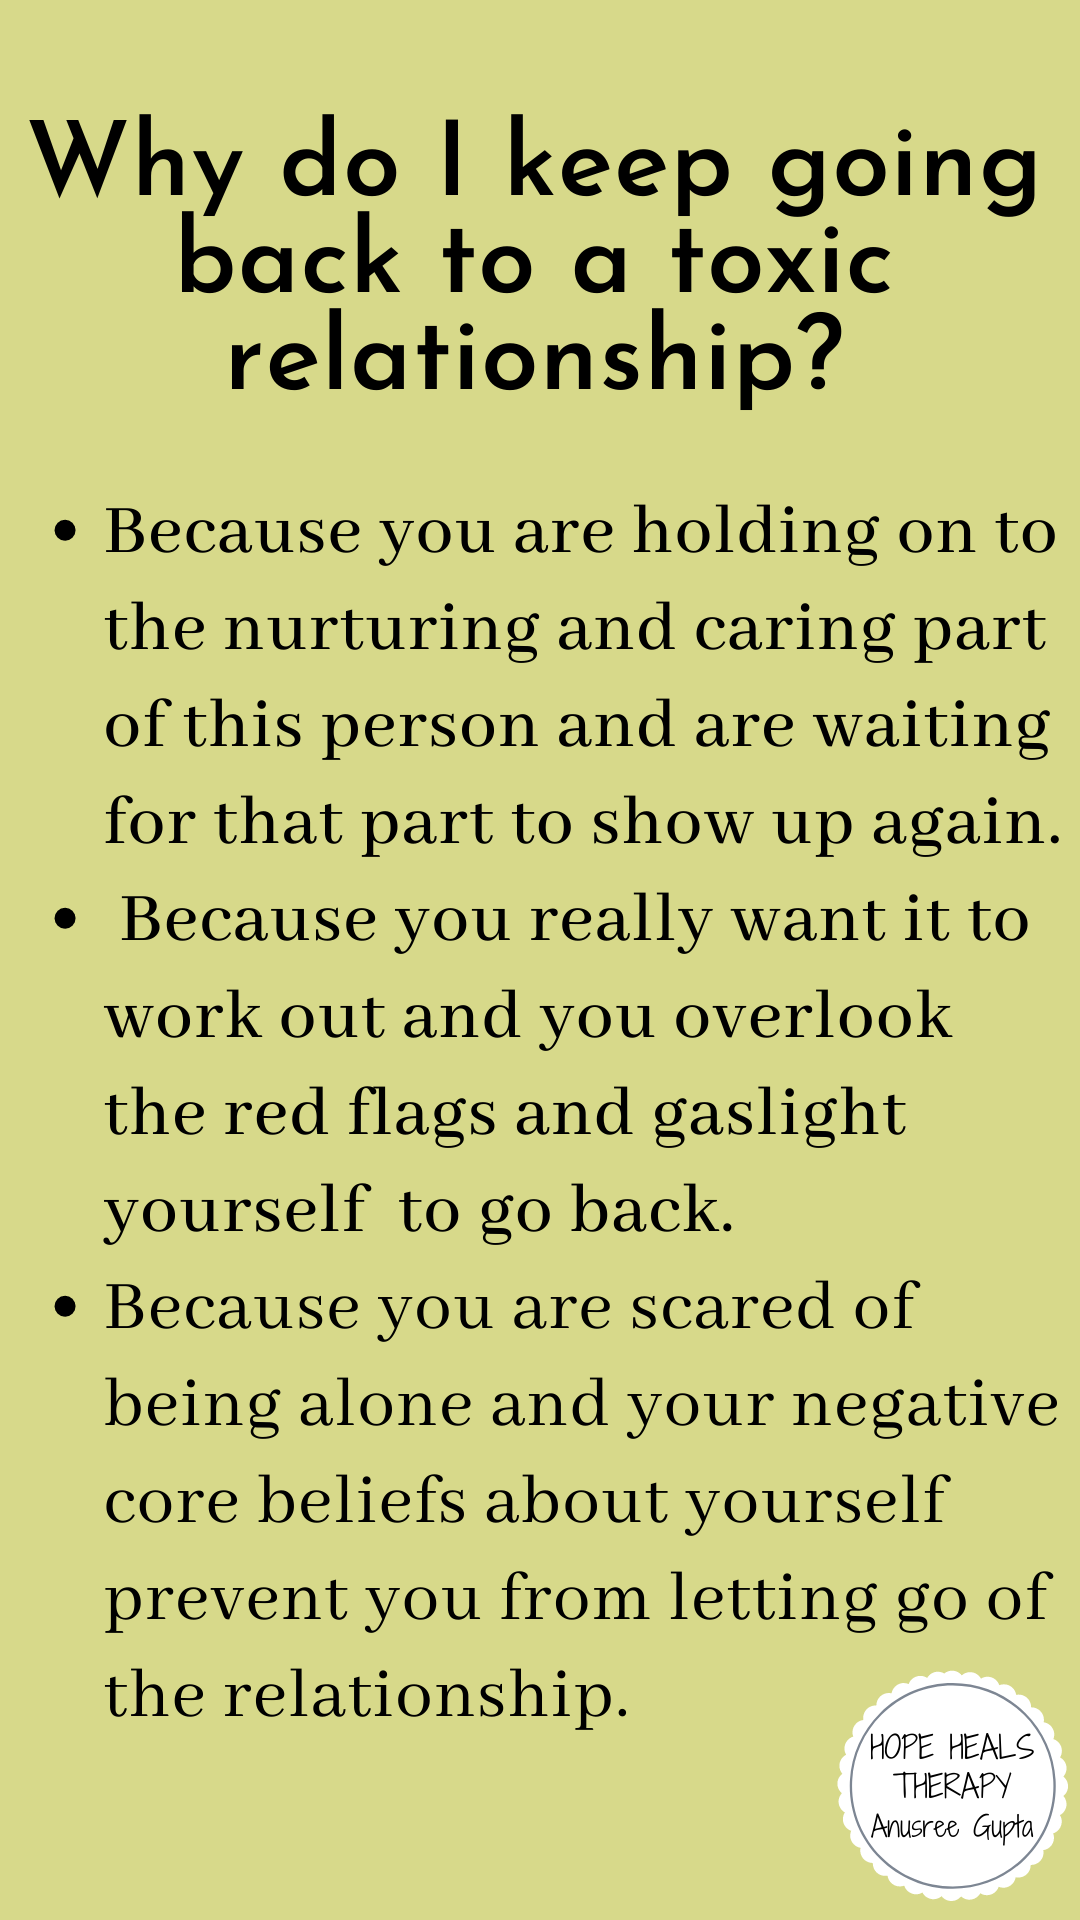 Why-do-I-keep-going-back-to-a-toxic-relationship